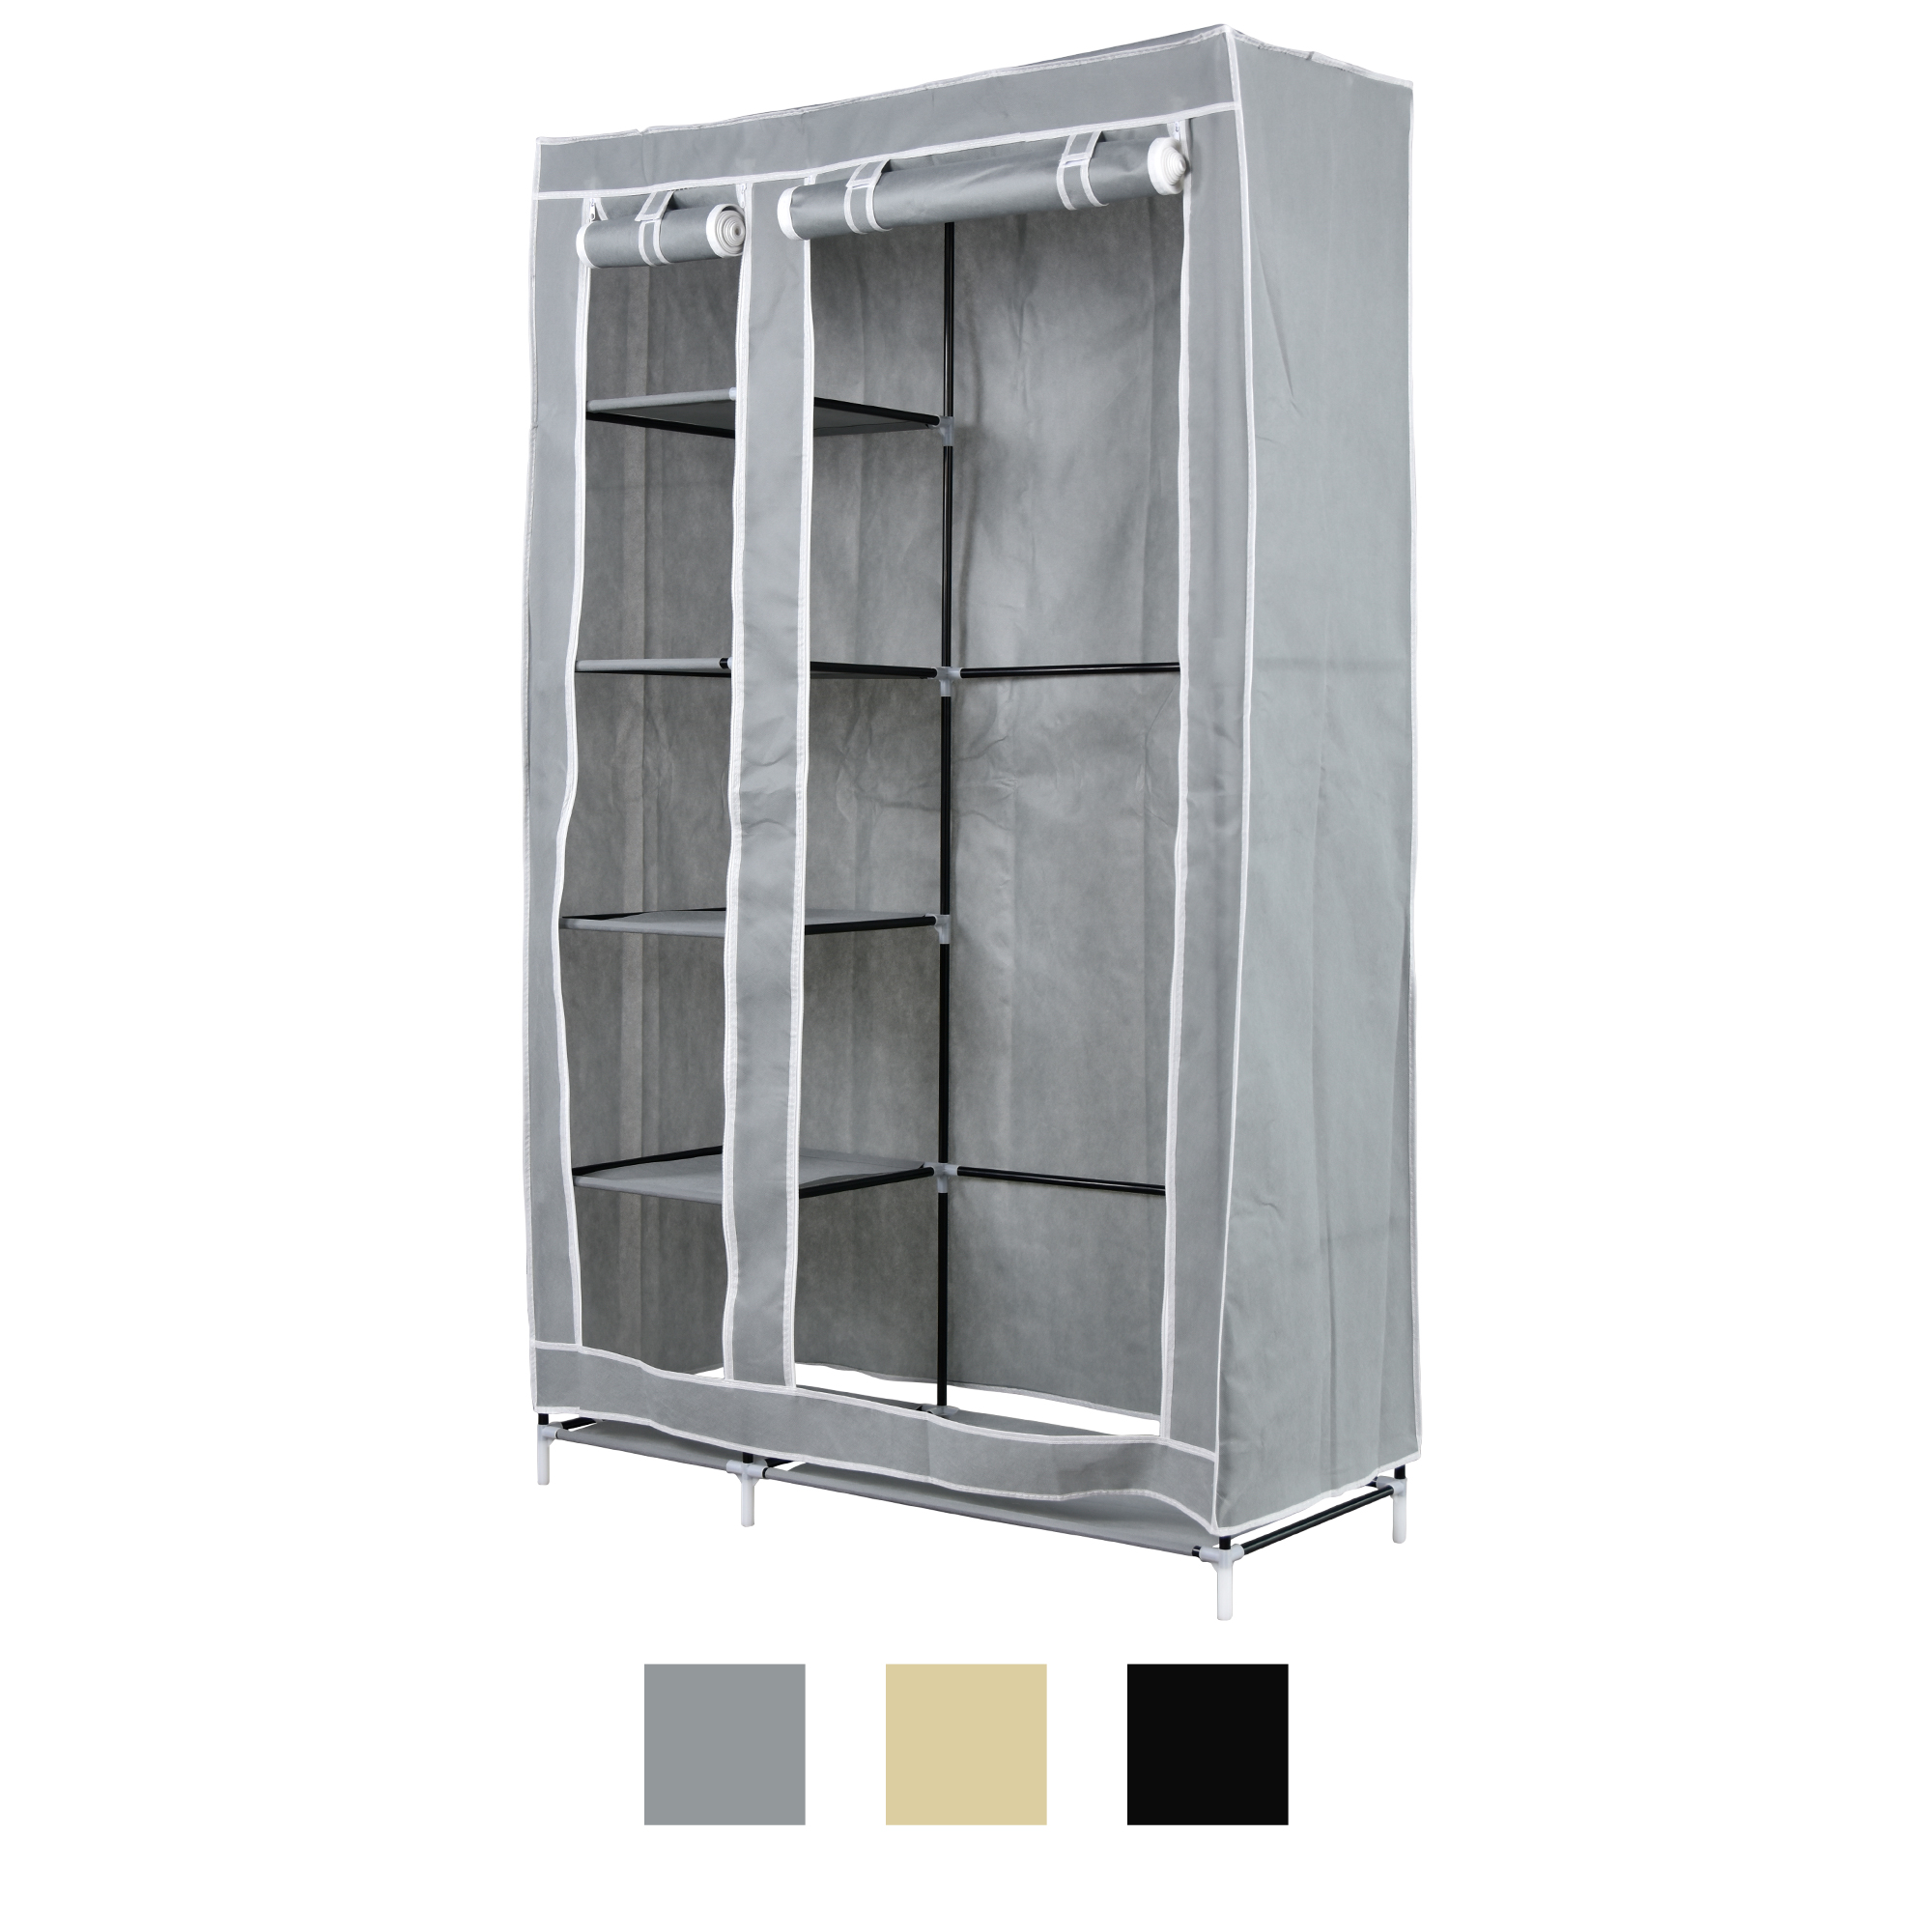 xl stoffschrank kleiderschrank faltschrank regal faltbar schrank 110x45x175cm ebay. Black Bedroom Furniture Sets. Home Design Ideas